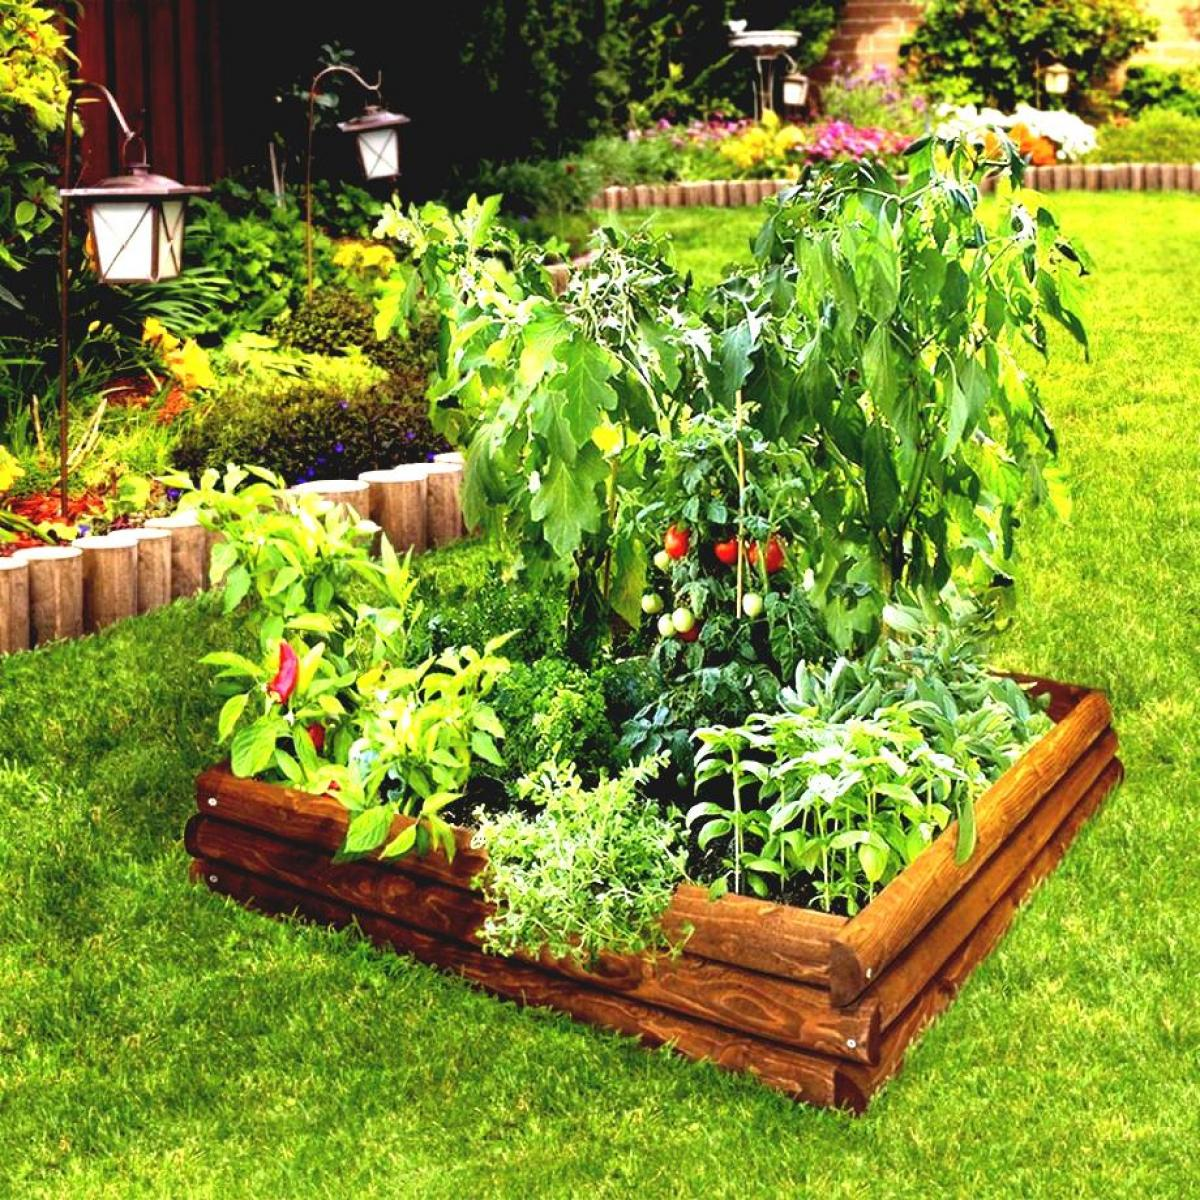 Backyard Kitchen Garden: Enchanting-small-kitchen-garden-on-backyard